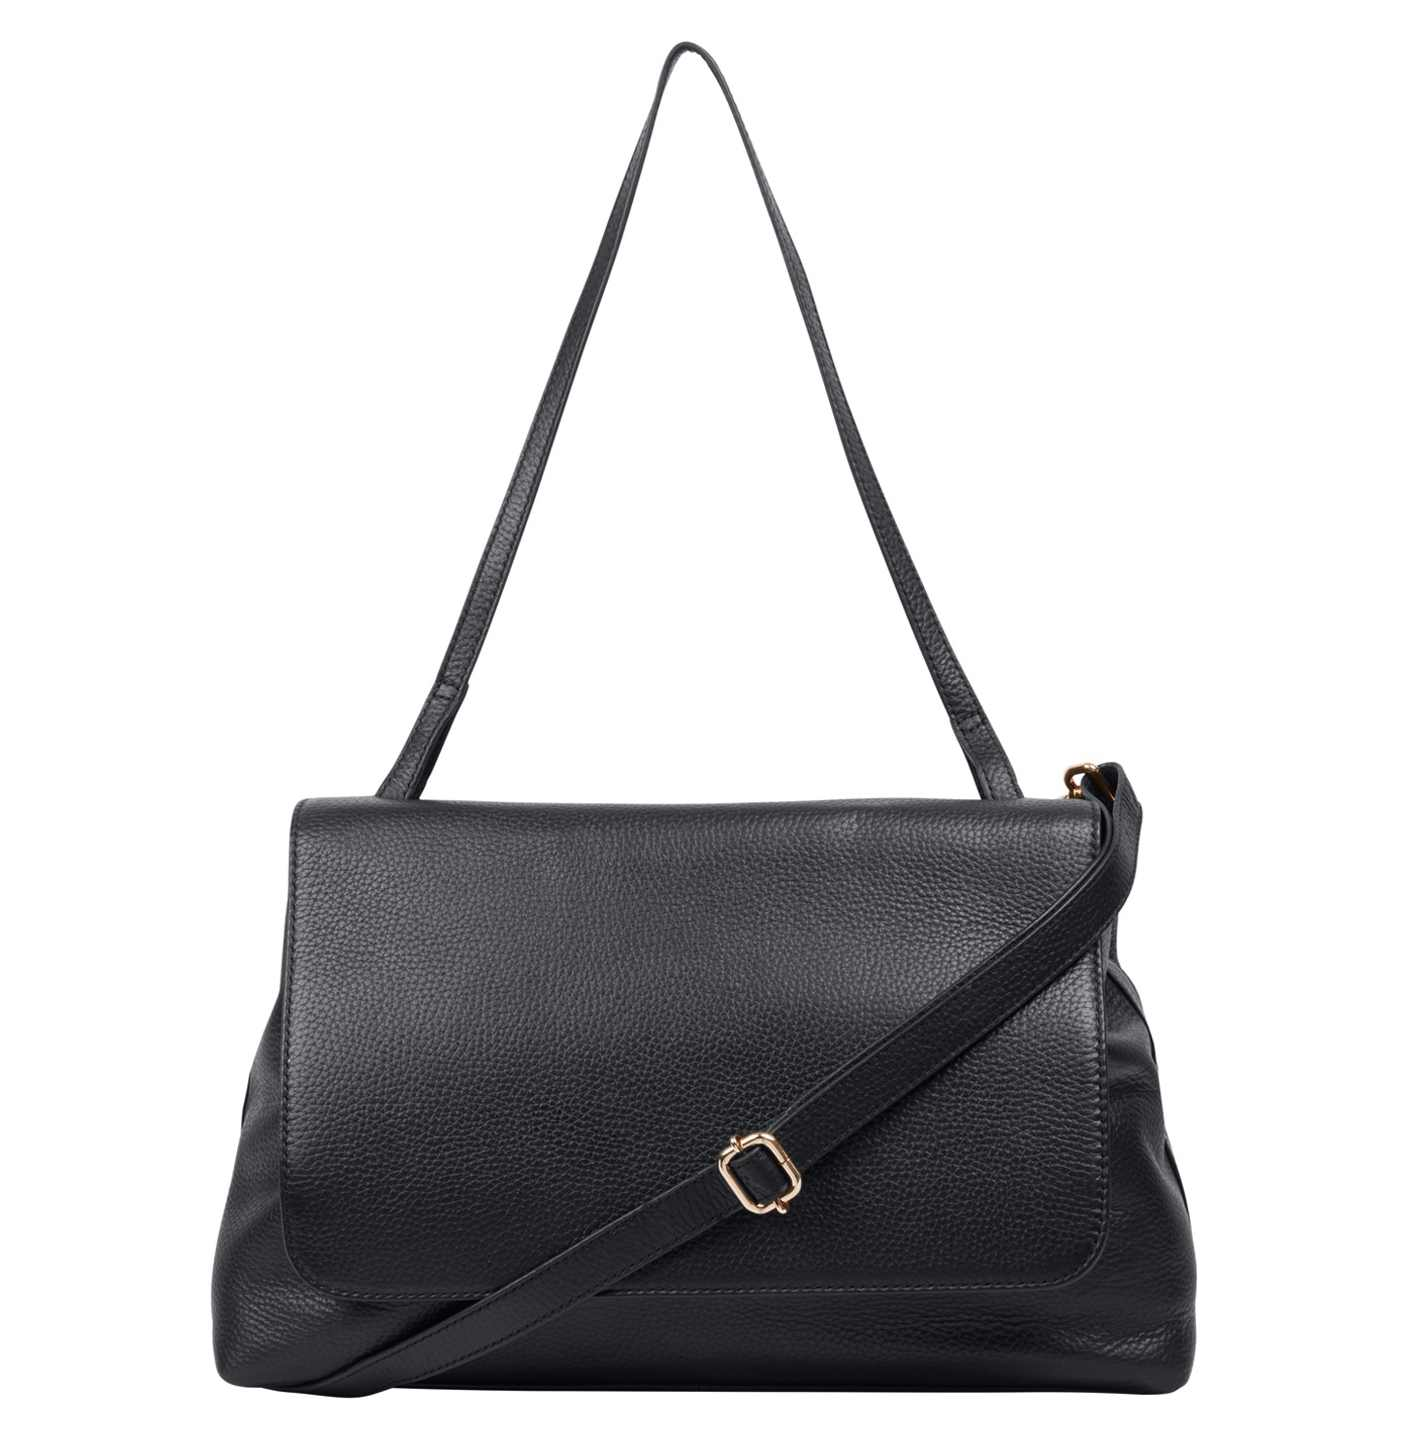 Hush Emilie Black Bag